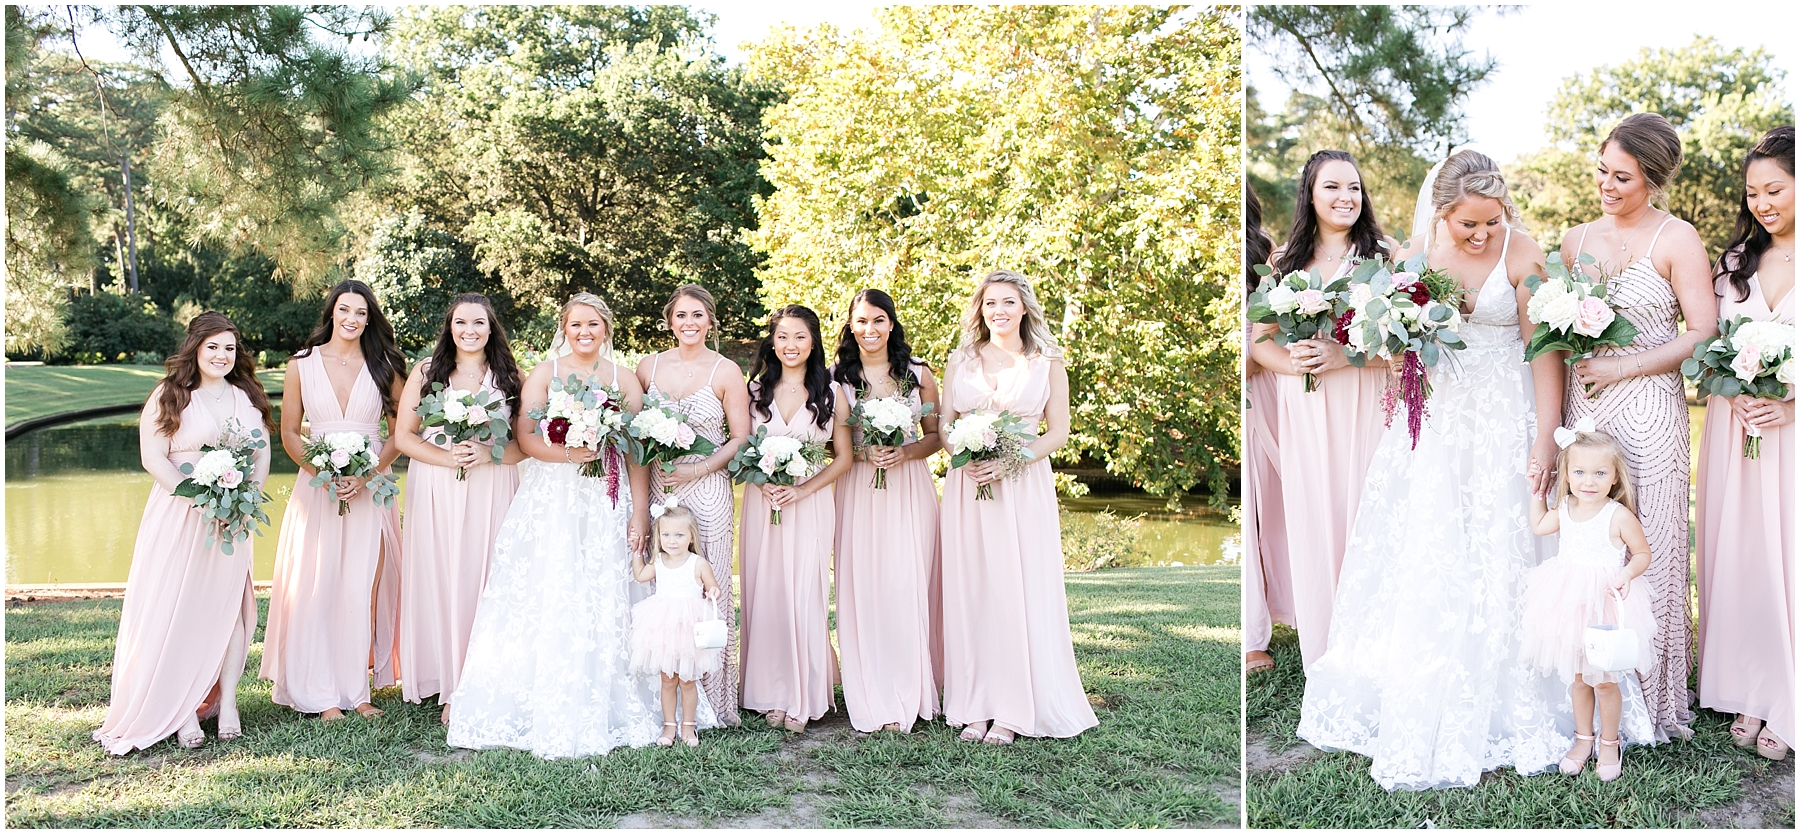 bridal party portraits at norfolk botanical gardens wedding day, jessica ryan photography